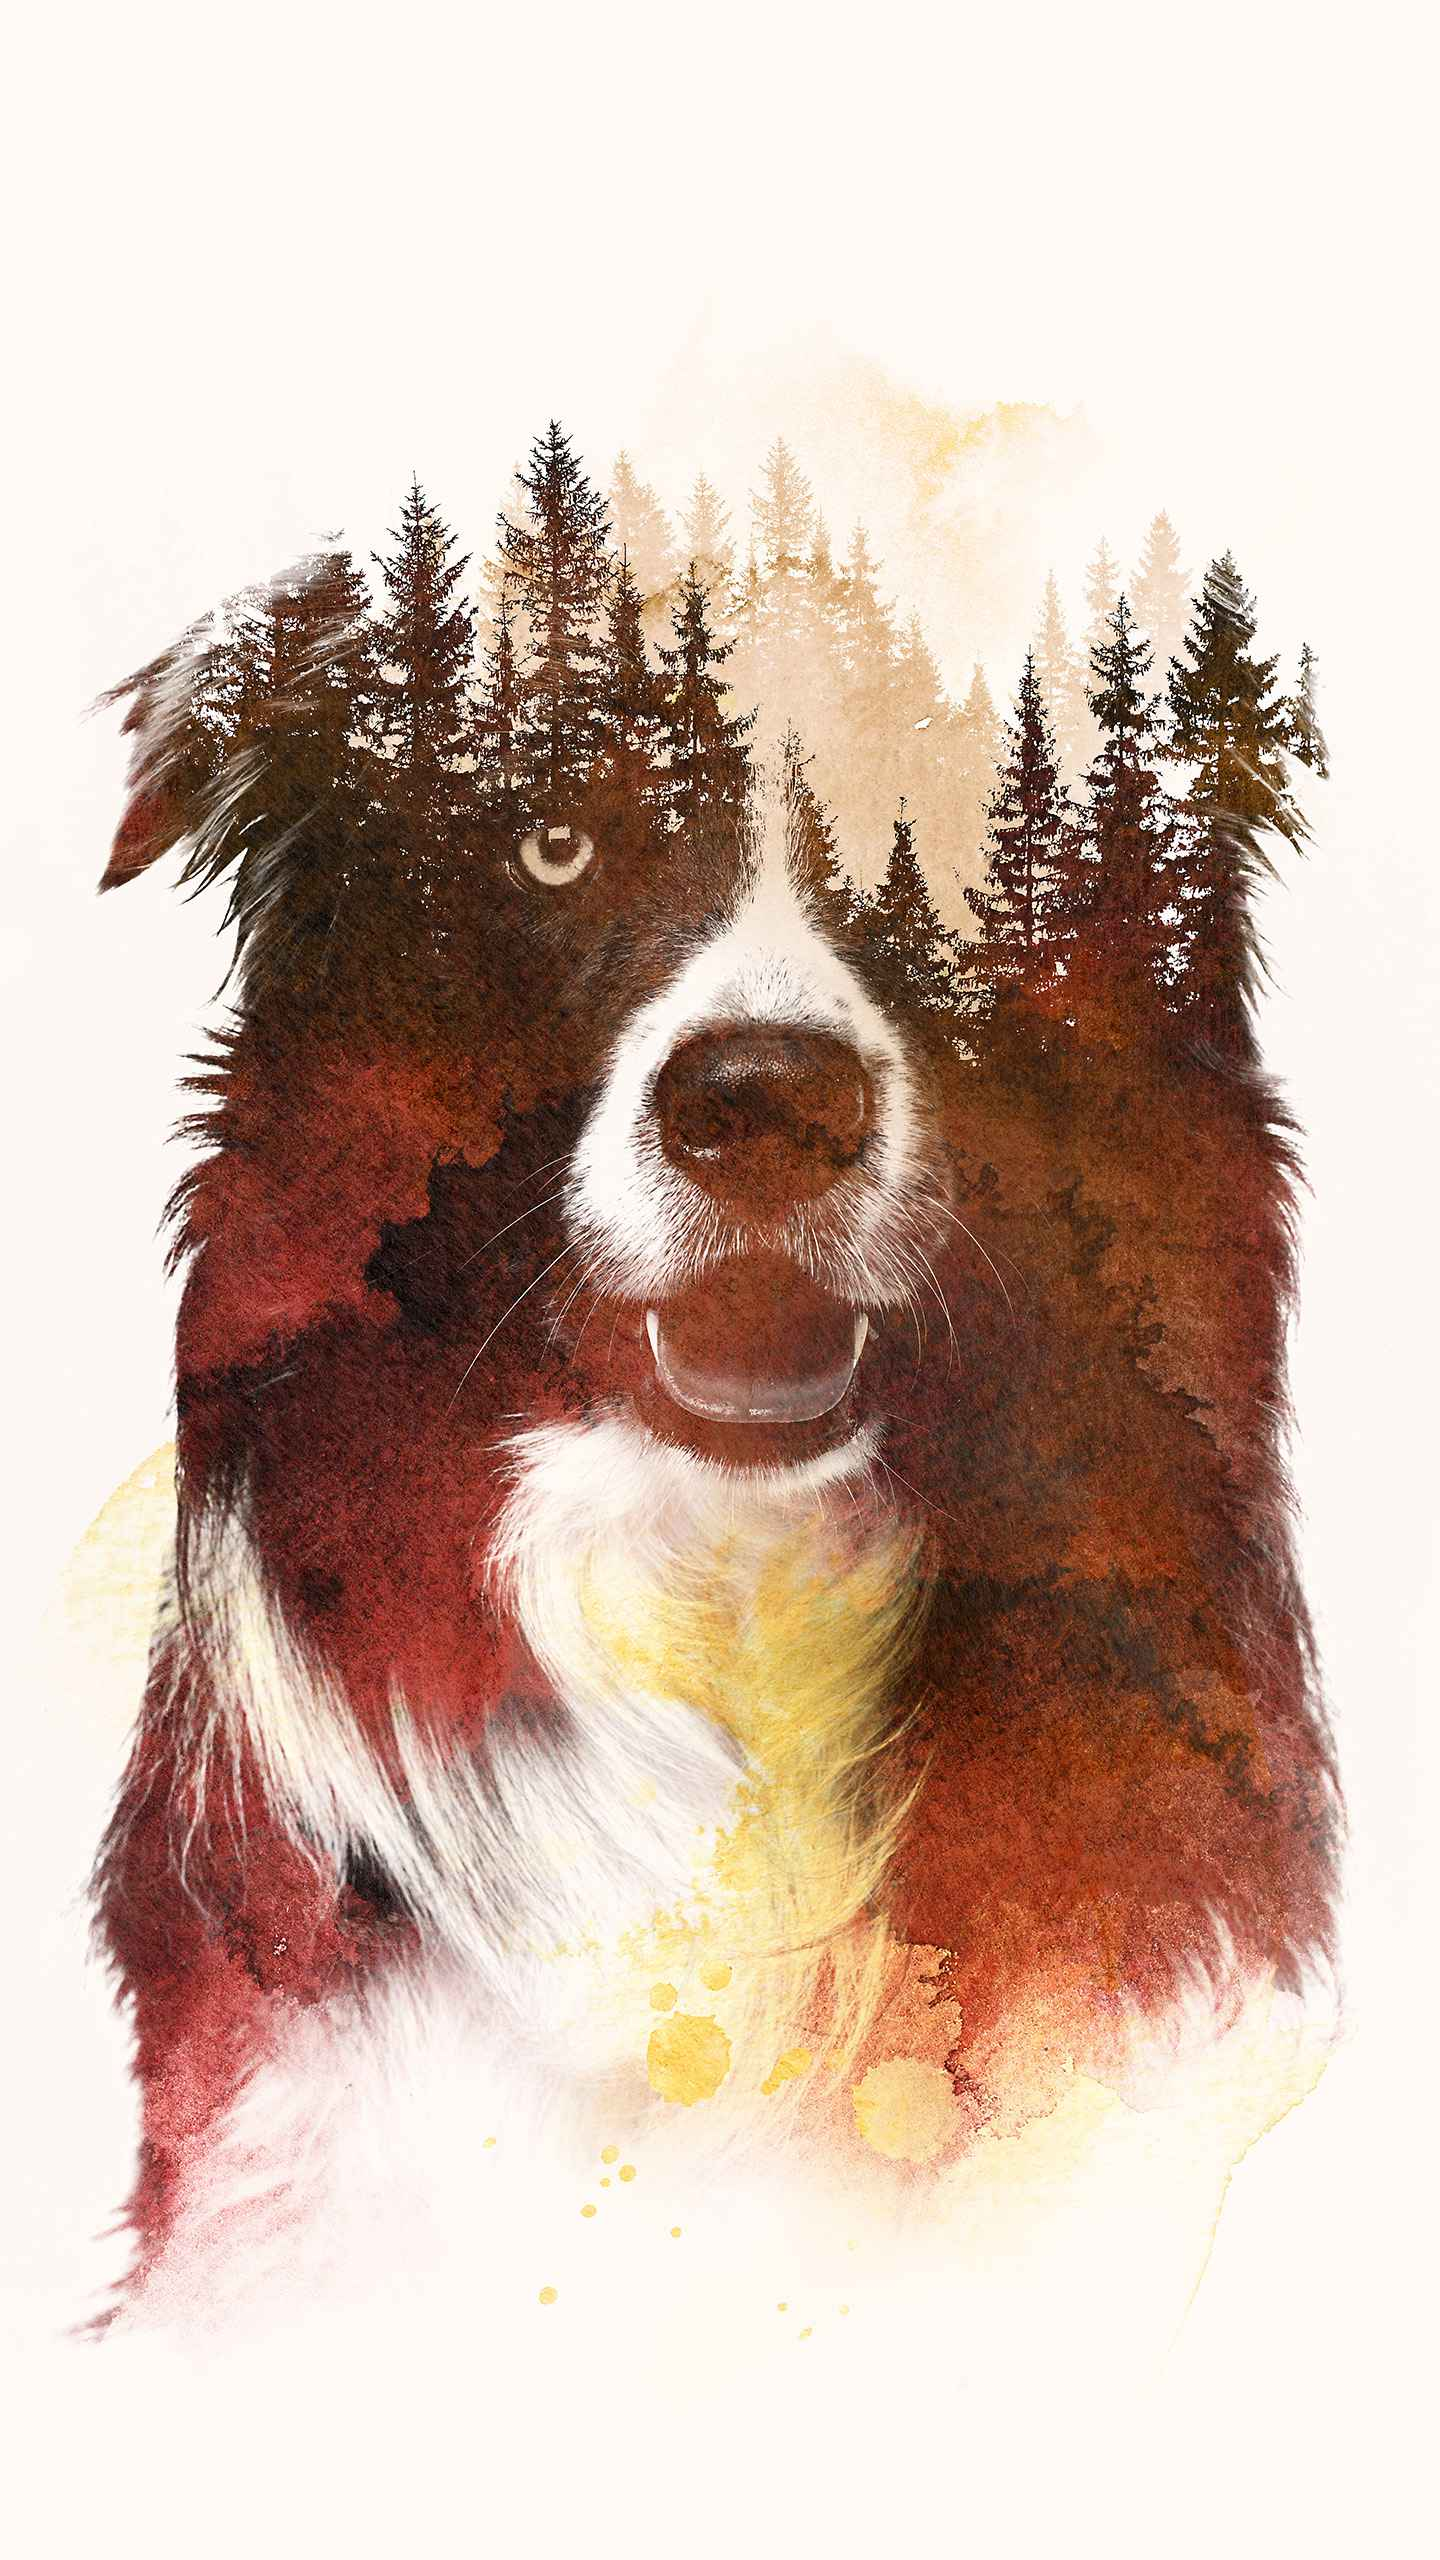 Forest Dog iPhone Wallpaper